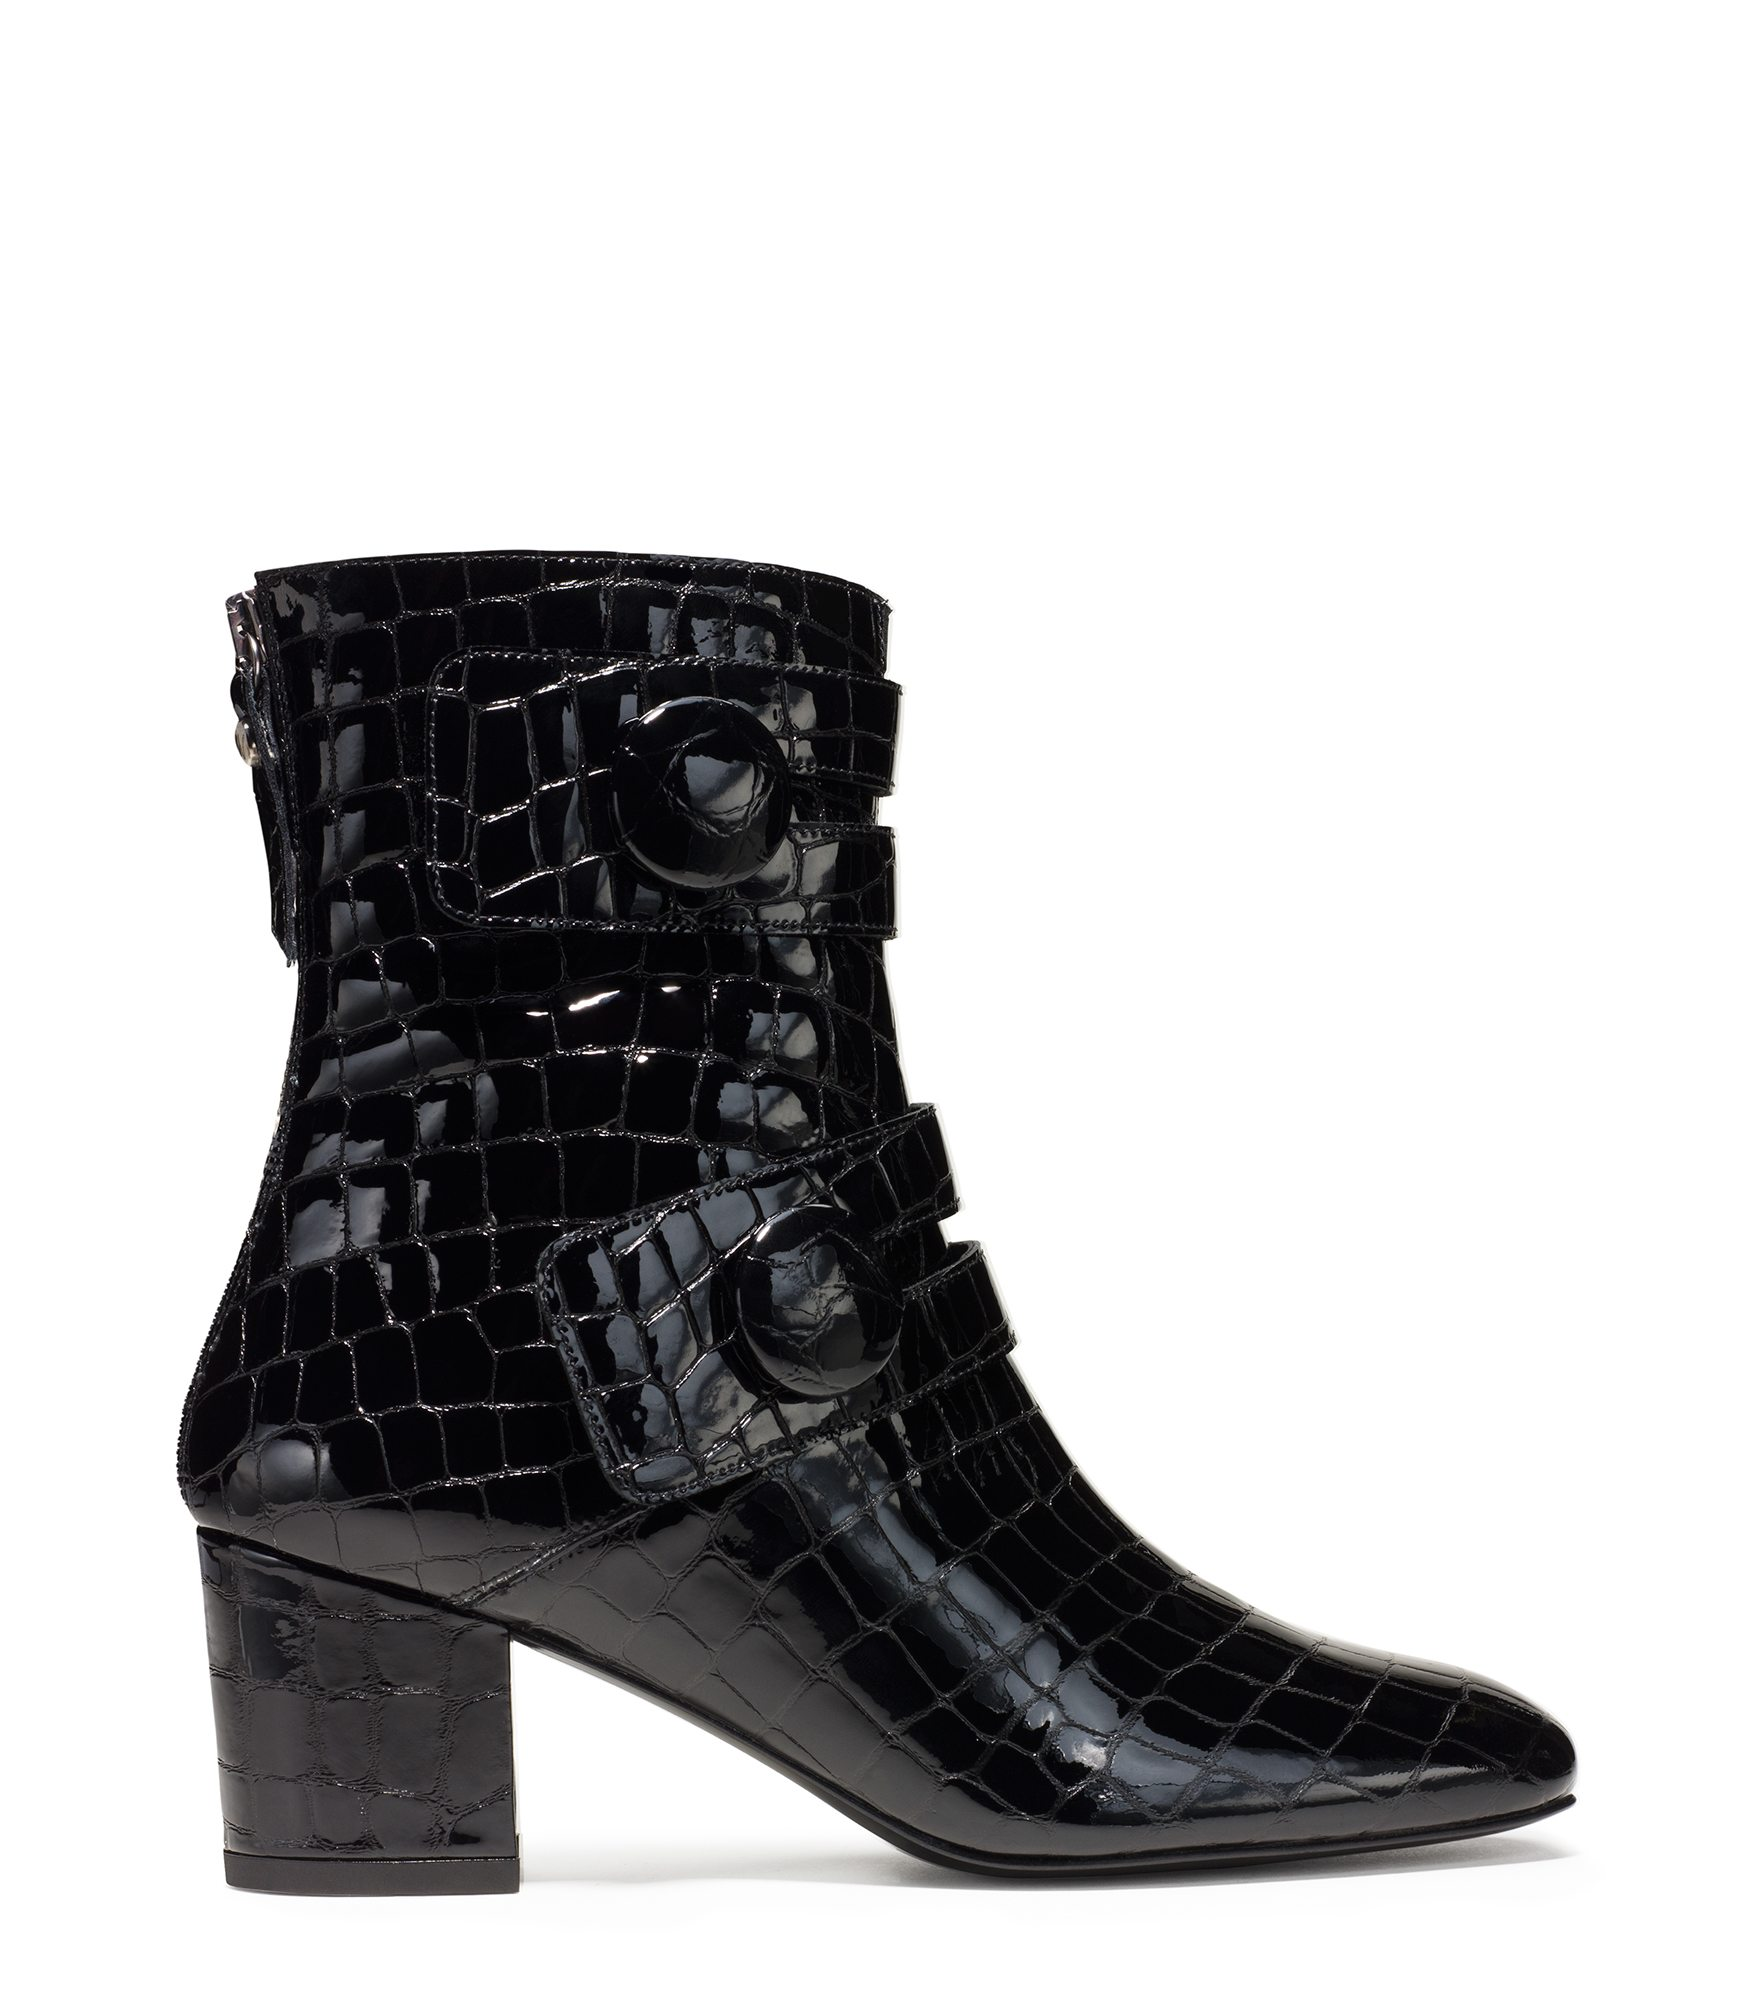 60s inspired Discoboots booties, with croc-stamped leather